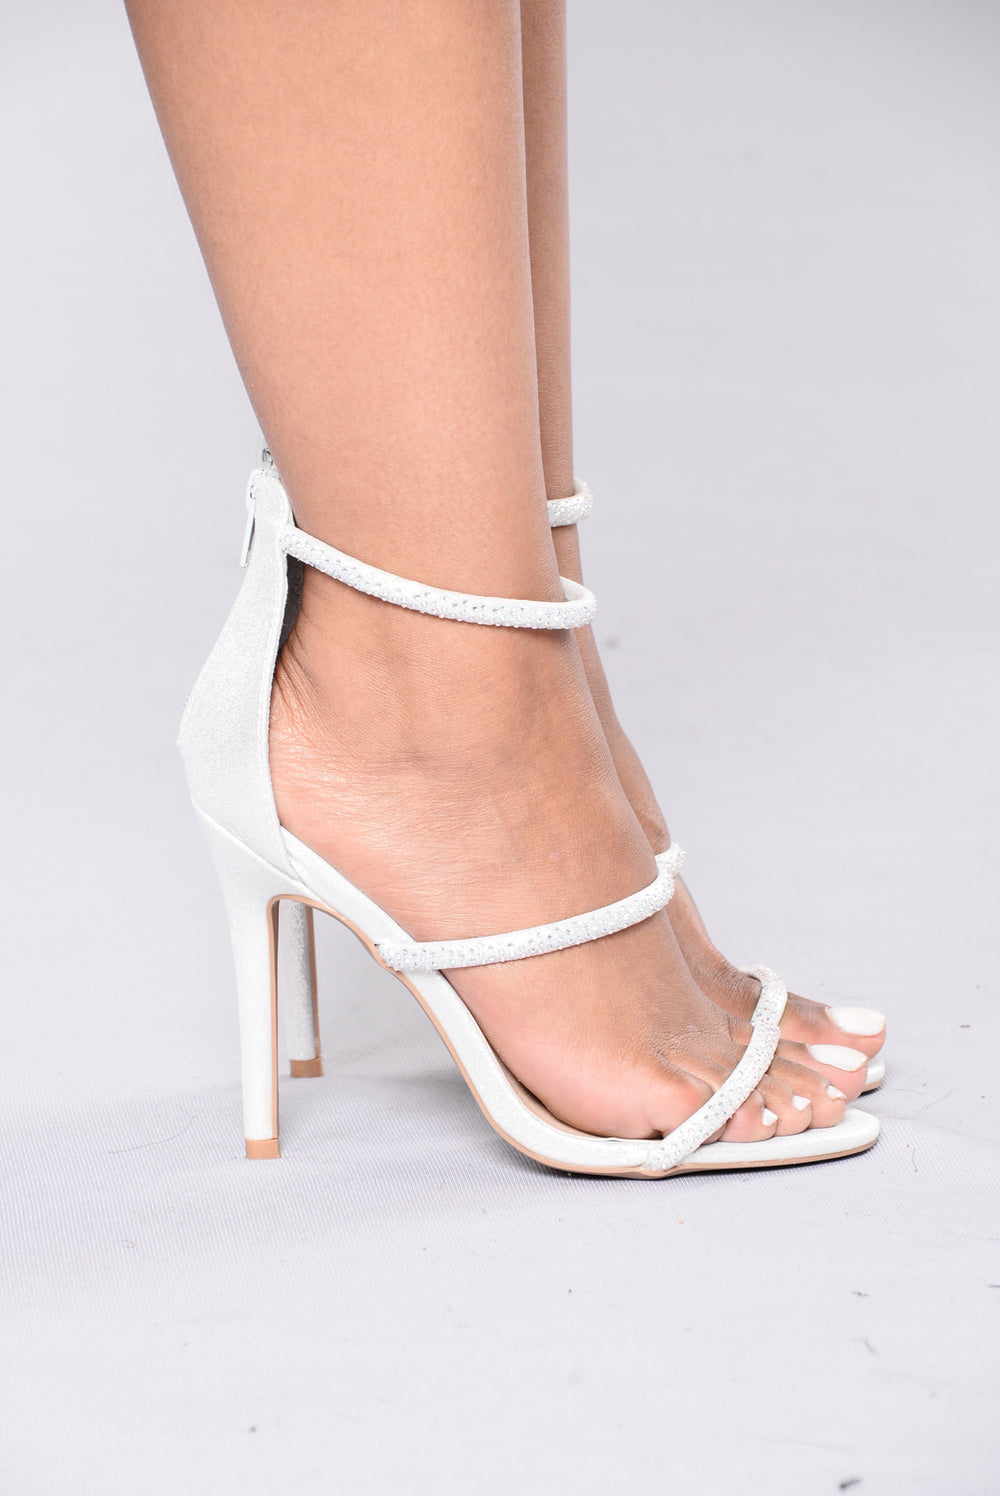 Diamond In The Sky Heels - Silver